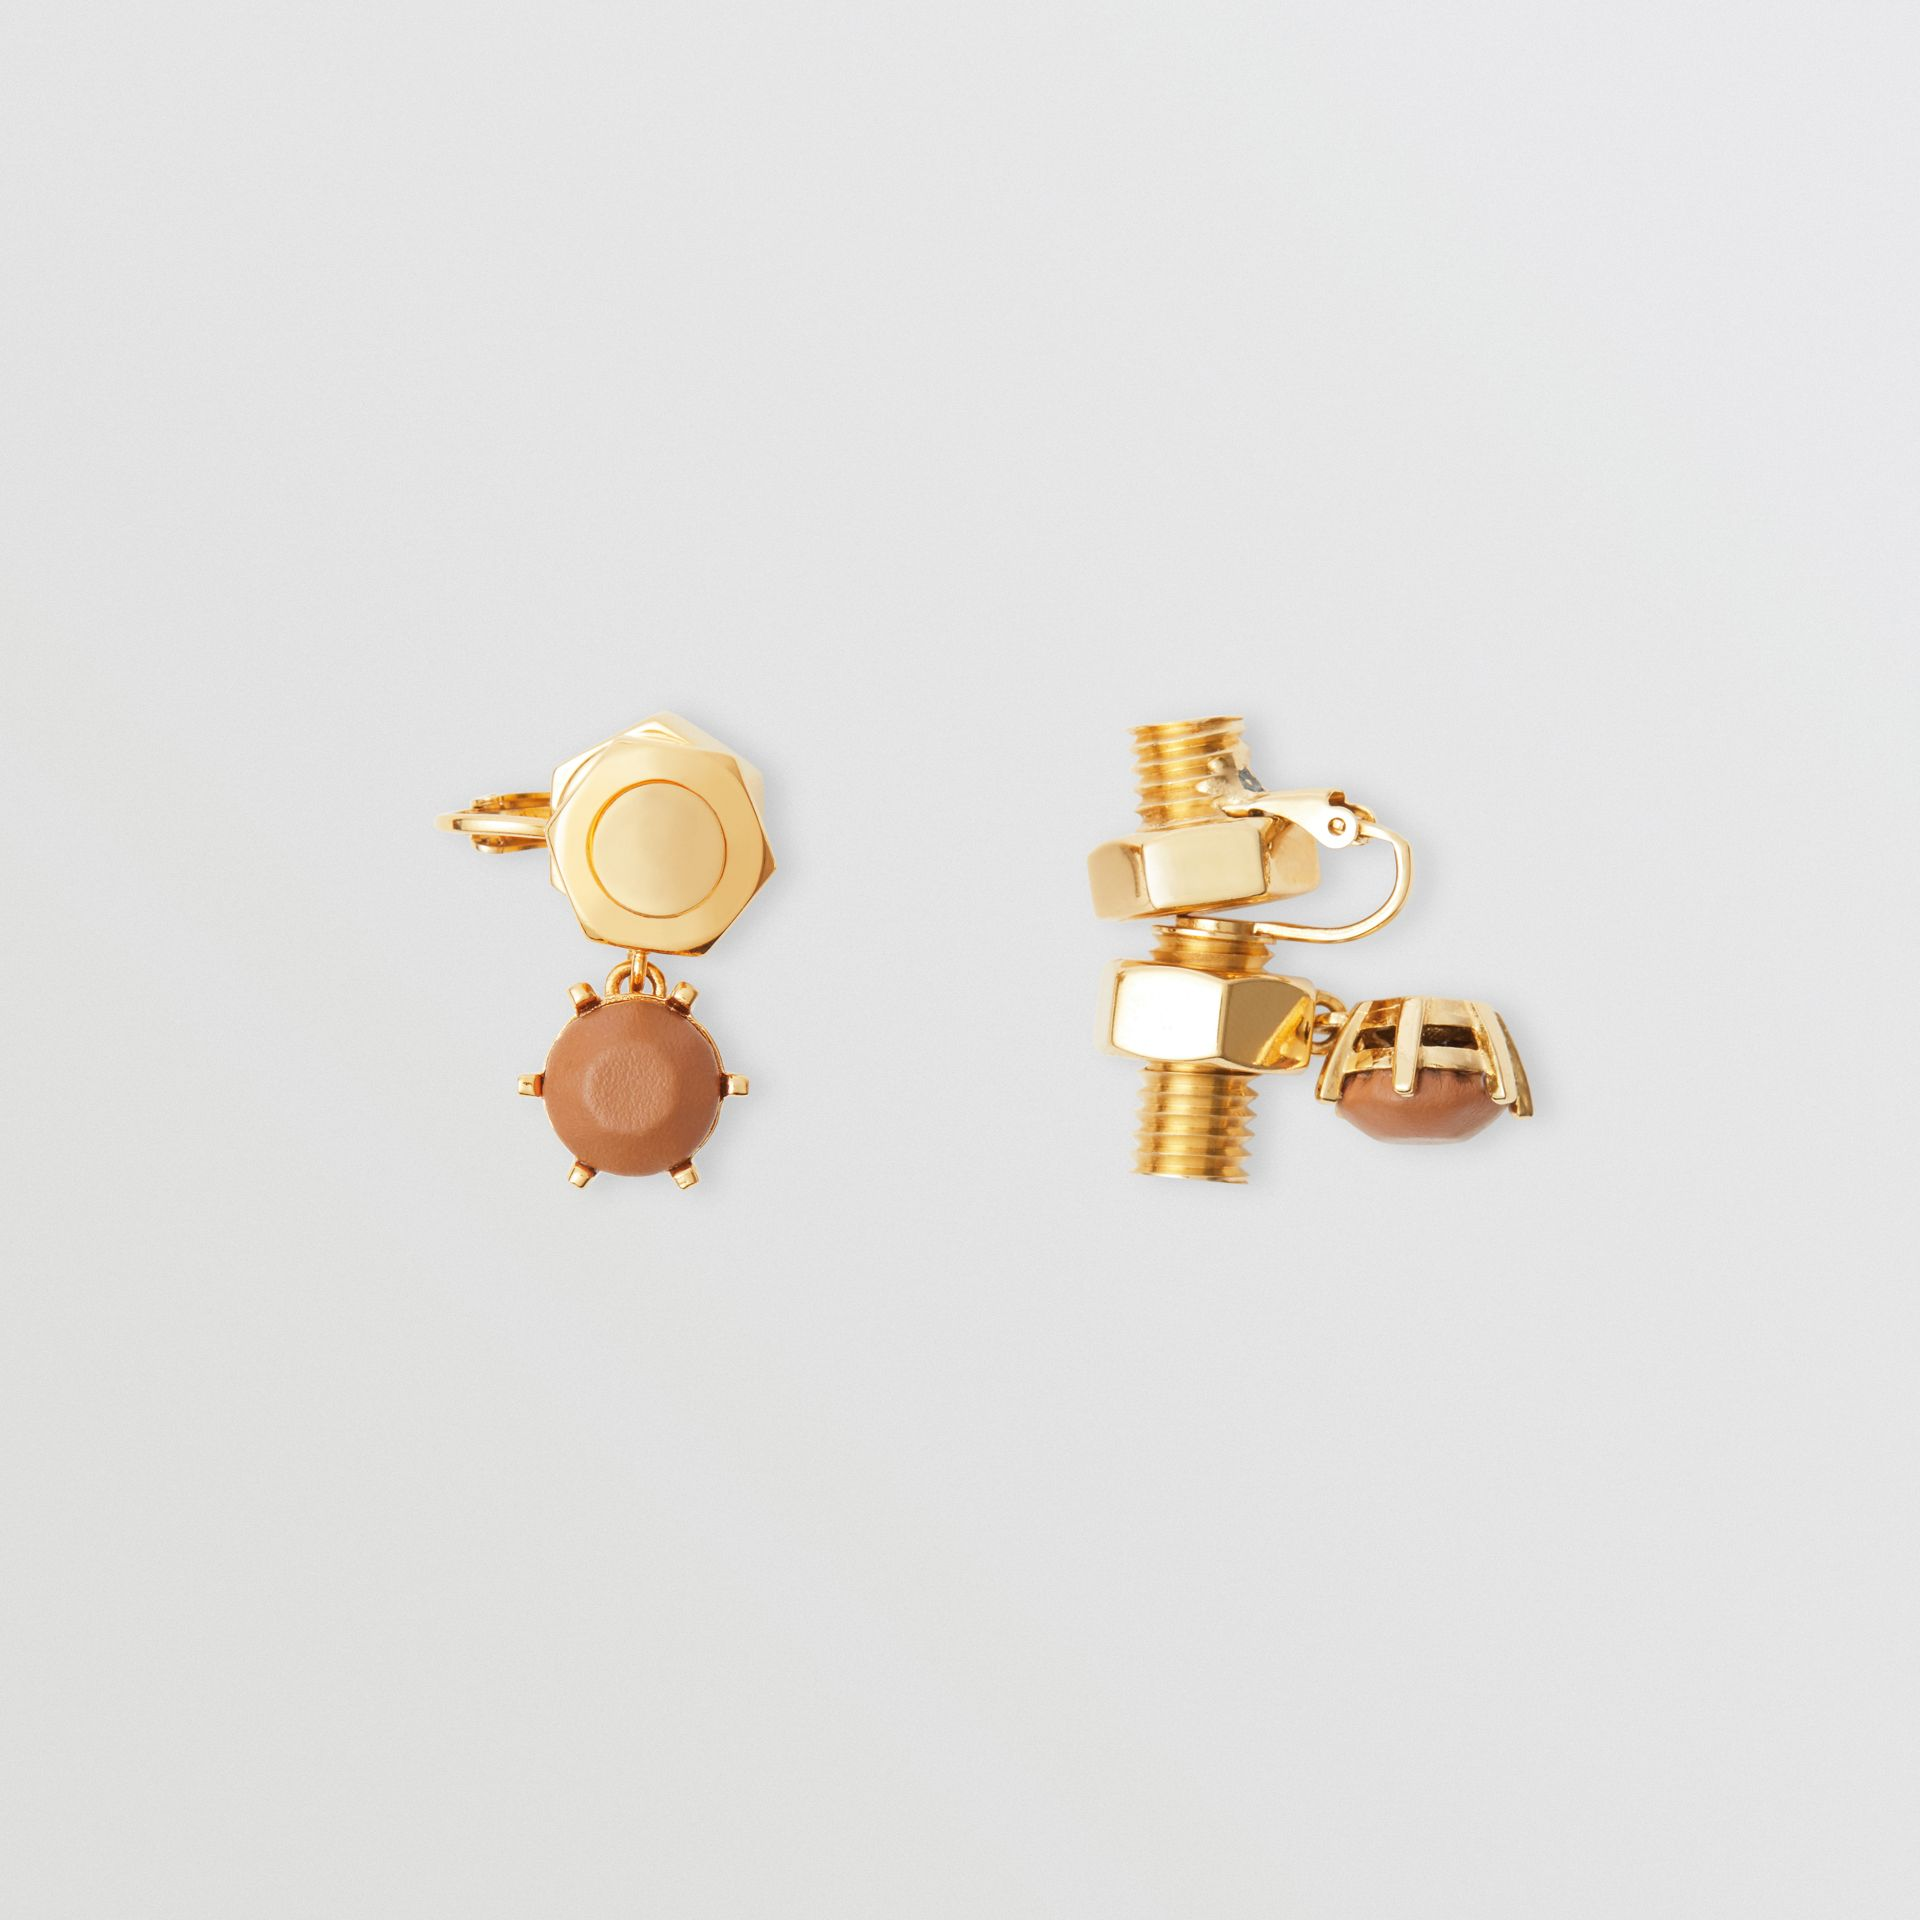 Leather Charm Gold-plated Nut and Bolt Earrings in Nutmeg/light - Women | Burberry - gallery image 3